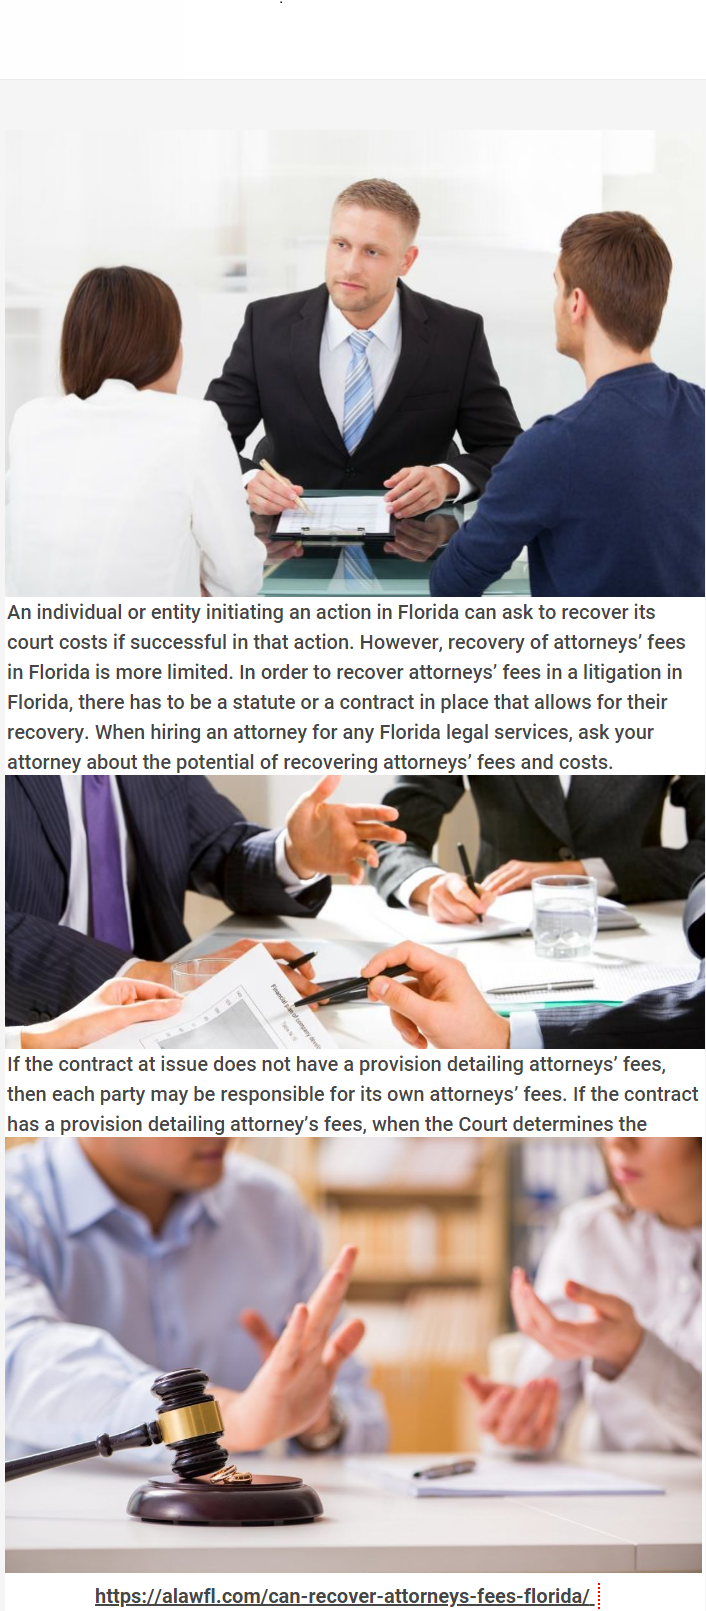 Can-Recover-Attorneys-Fees-Florida